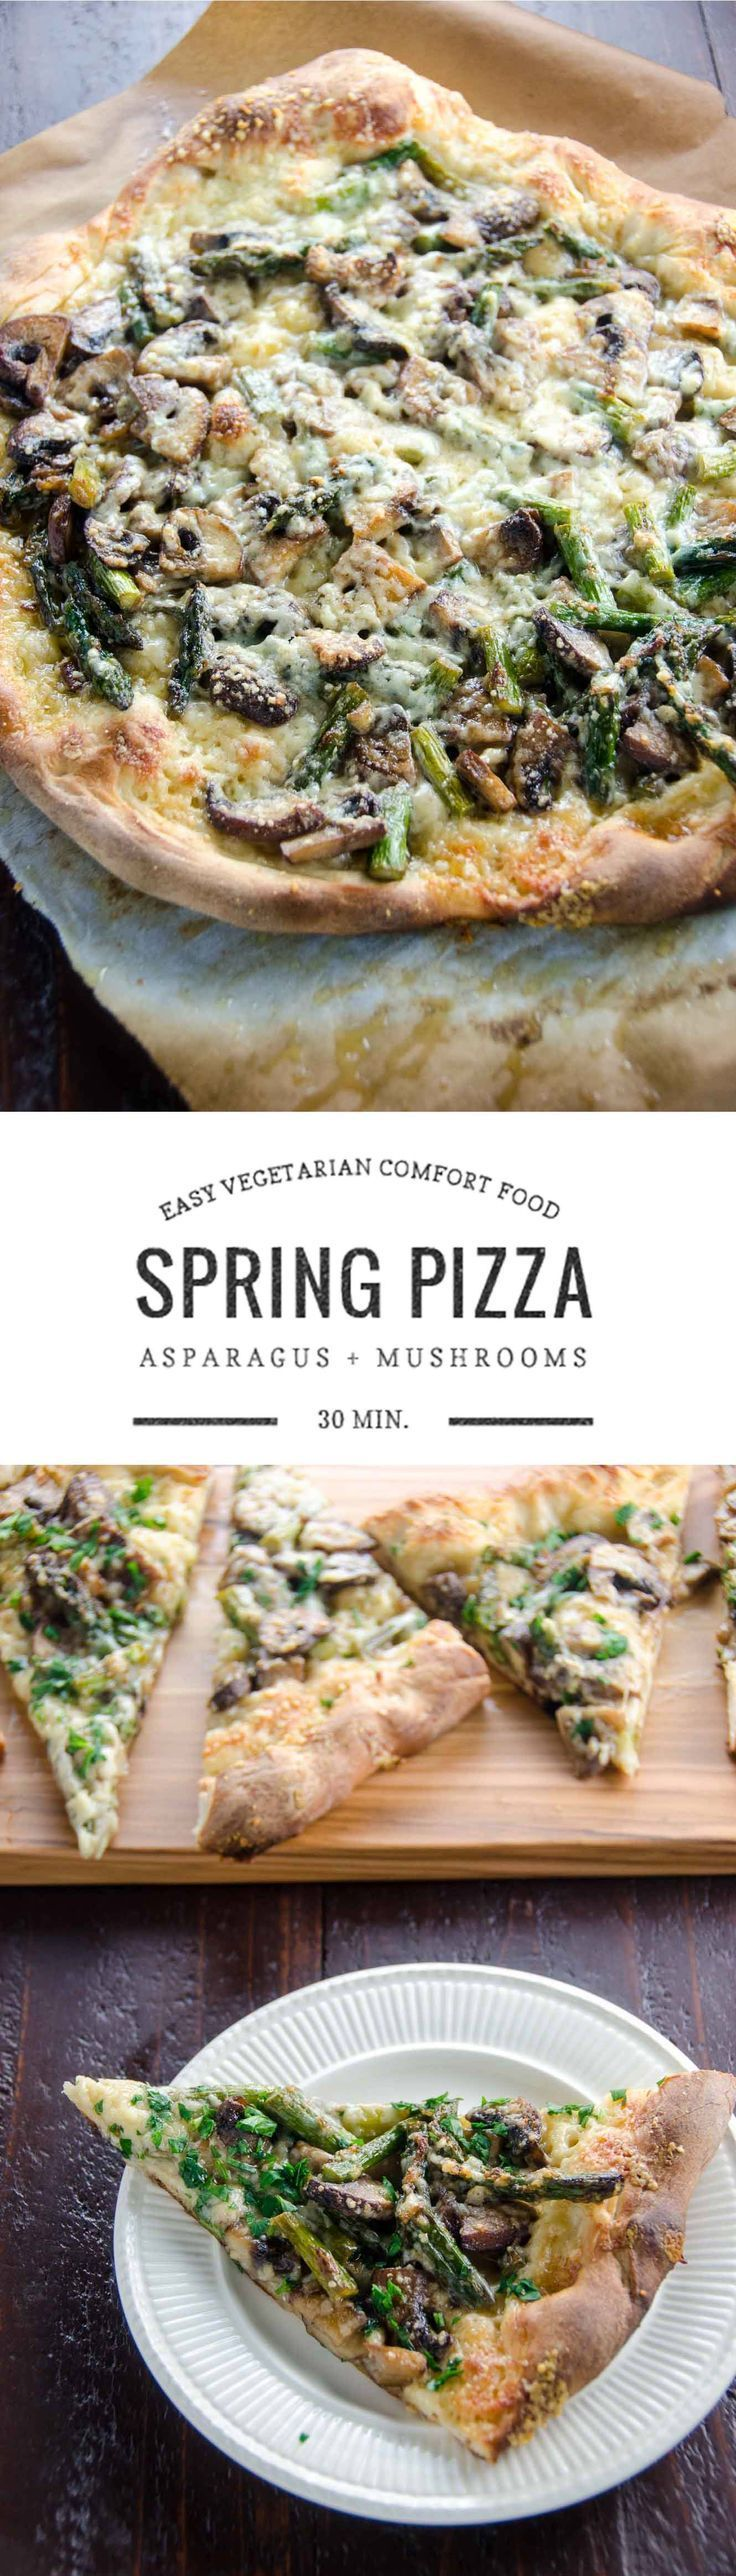 A lovely spring vegetable pizza with asparagus, mushrooms, and two kinds of cheese is savory, springy, and nice and easy. Ready in 30 minutes.